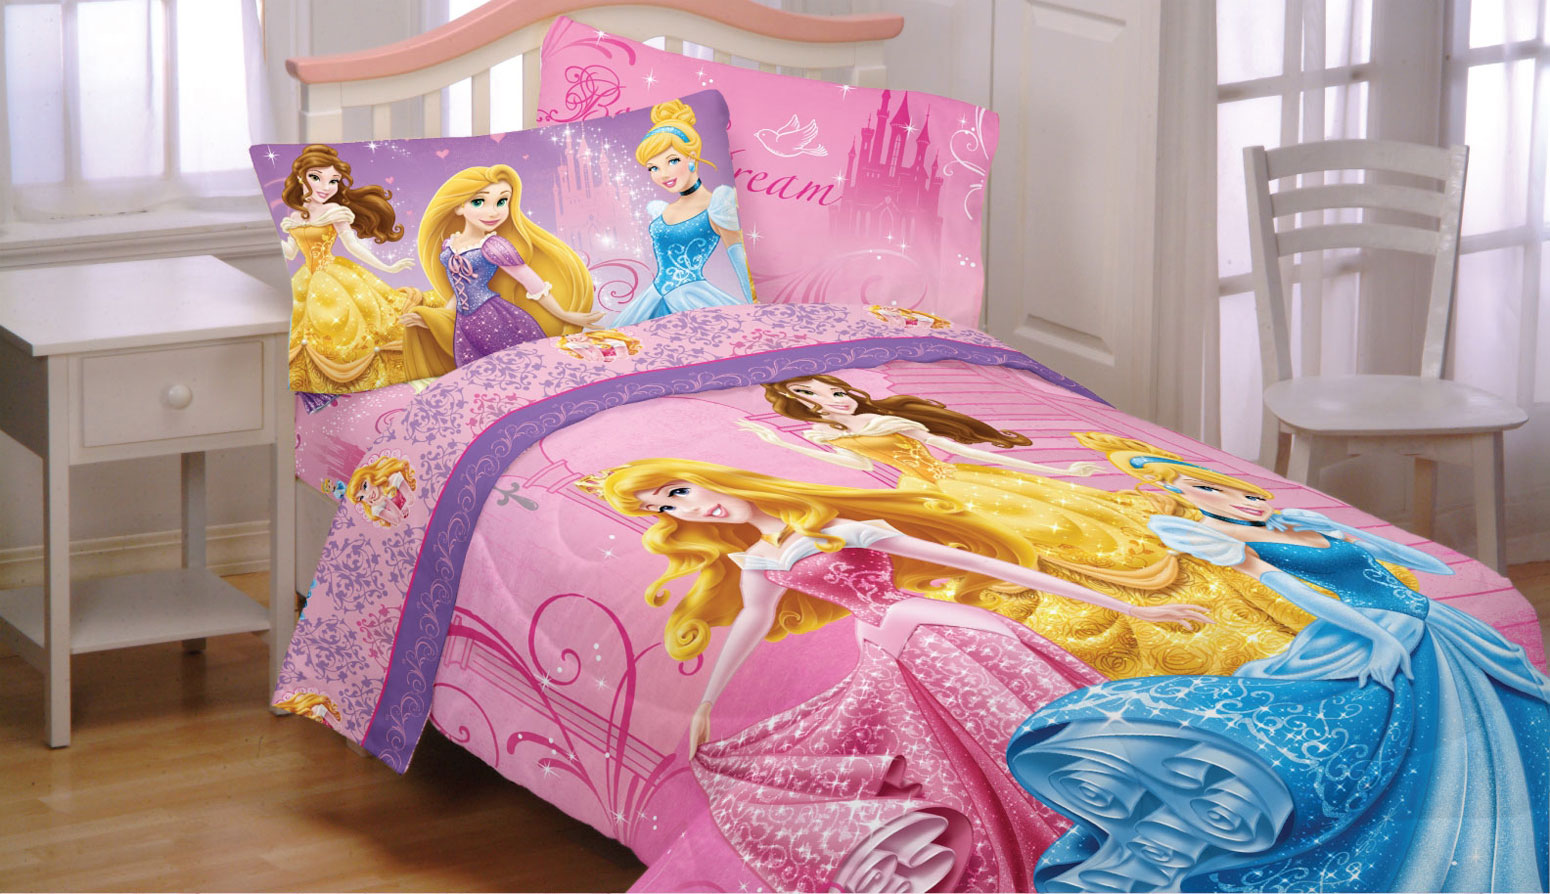 Design Princess Bedding princess bedding set full my family fun jeweled garden disney princesses glamour comforter sheets